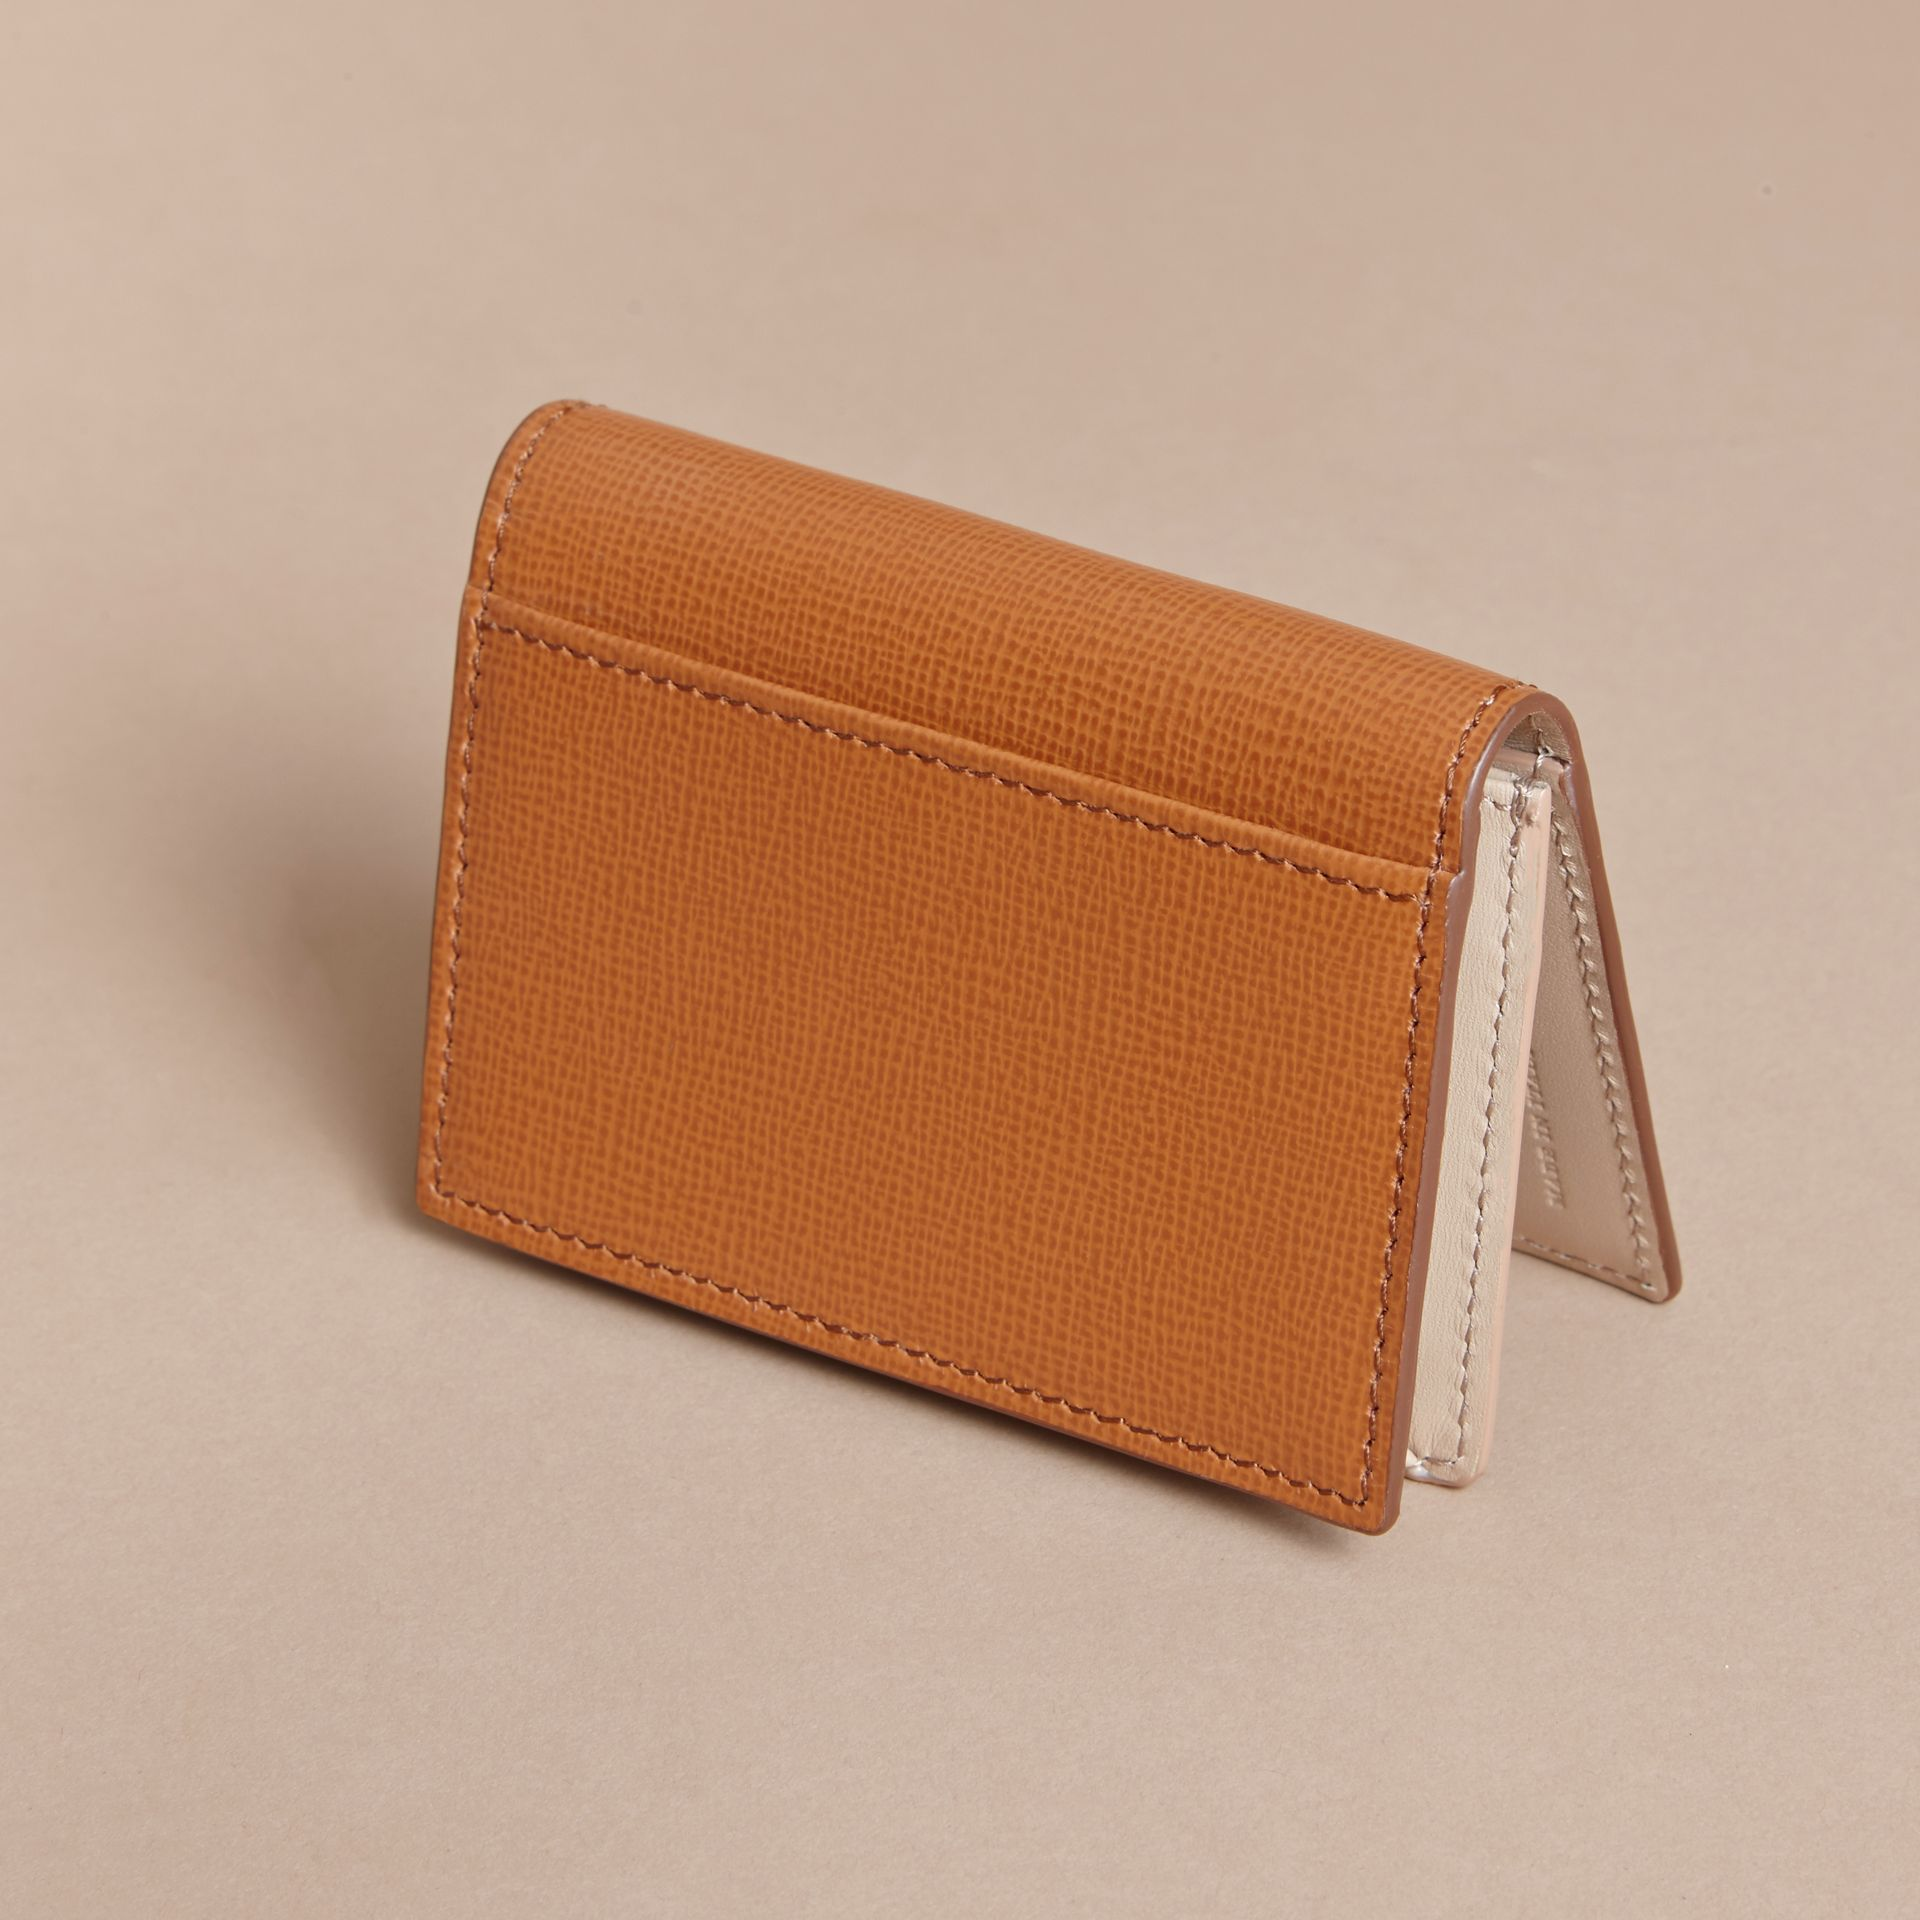 London Leather Folding Card Case in Tan - Men | Burberry - gallery image 3